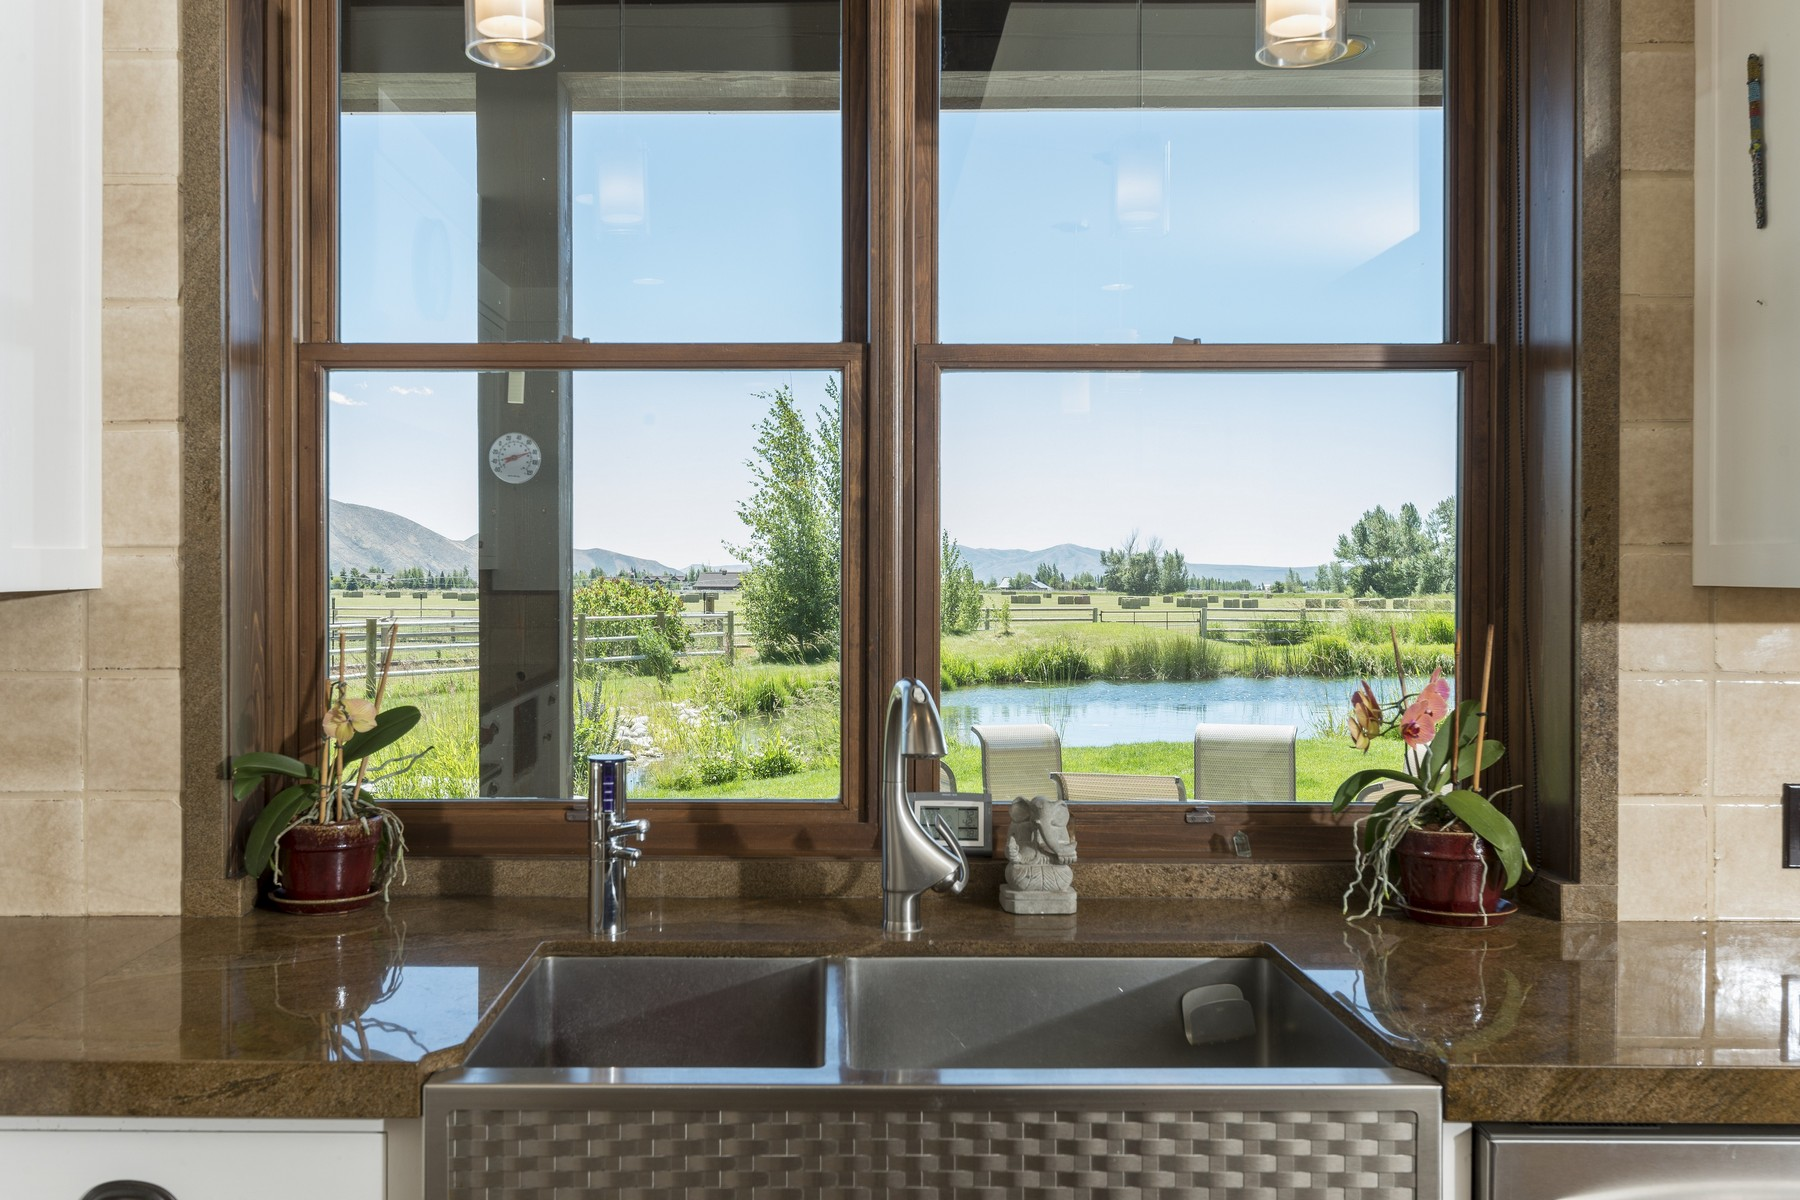 Additional photo for property listing at Your Dream Ranch 10965 St Hwy 75 Bellevue, Idaho 83313 United States